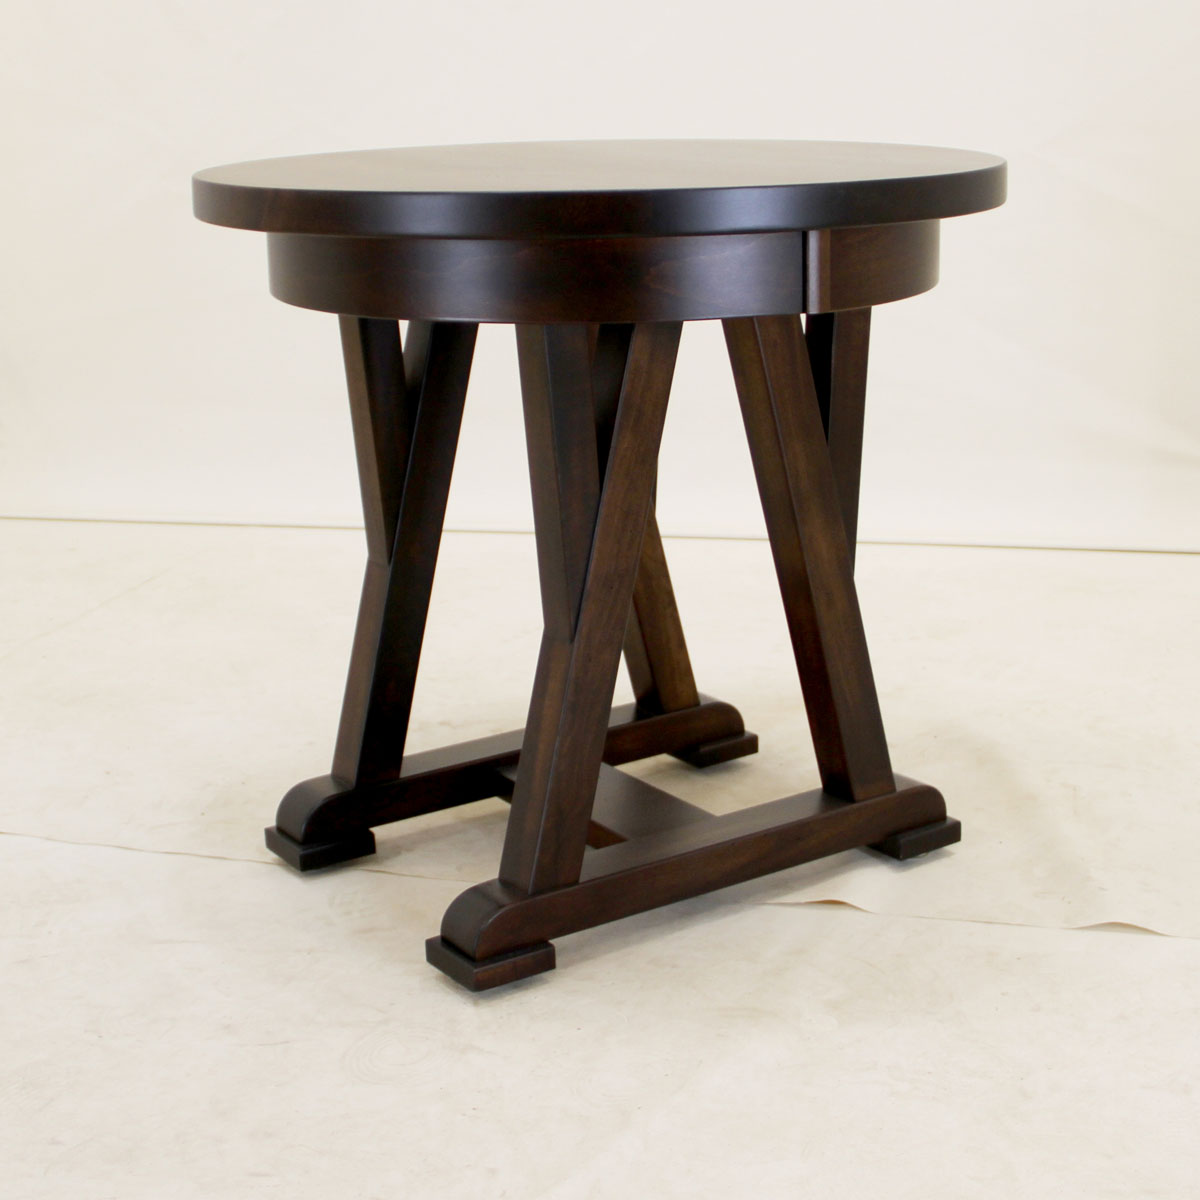 Prime Steam Bending Plywood Sold Wood Contemporary Ocoug Best Dining Table And Chair Ideas Images Ocougorg